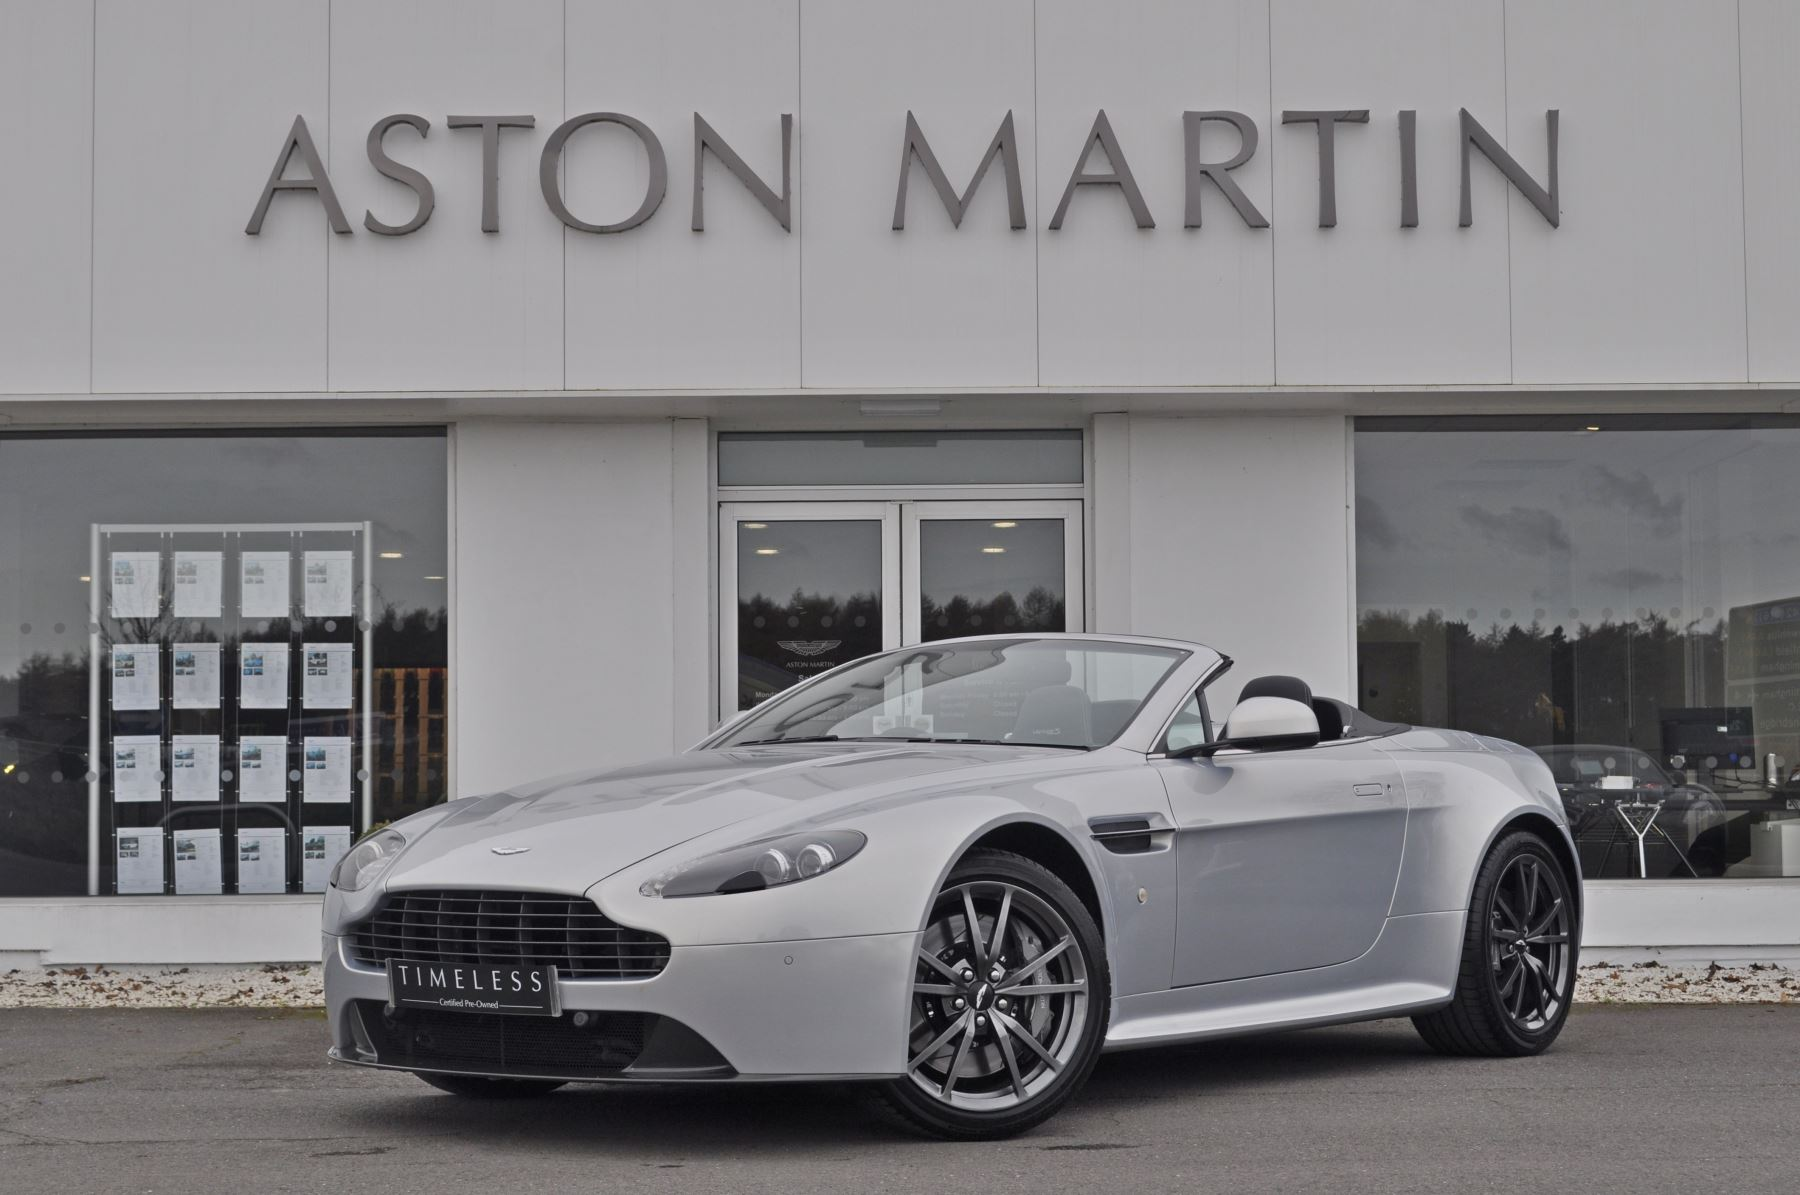 Aston Martin V8 Vantage S S 2dr Sportshift 4.7 Automatic 3 door Roadster (2012) image